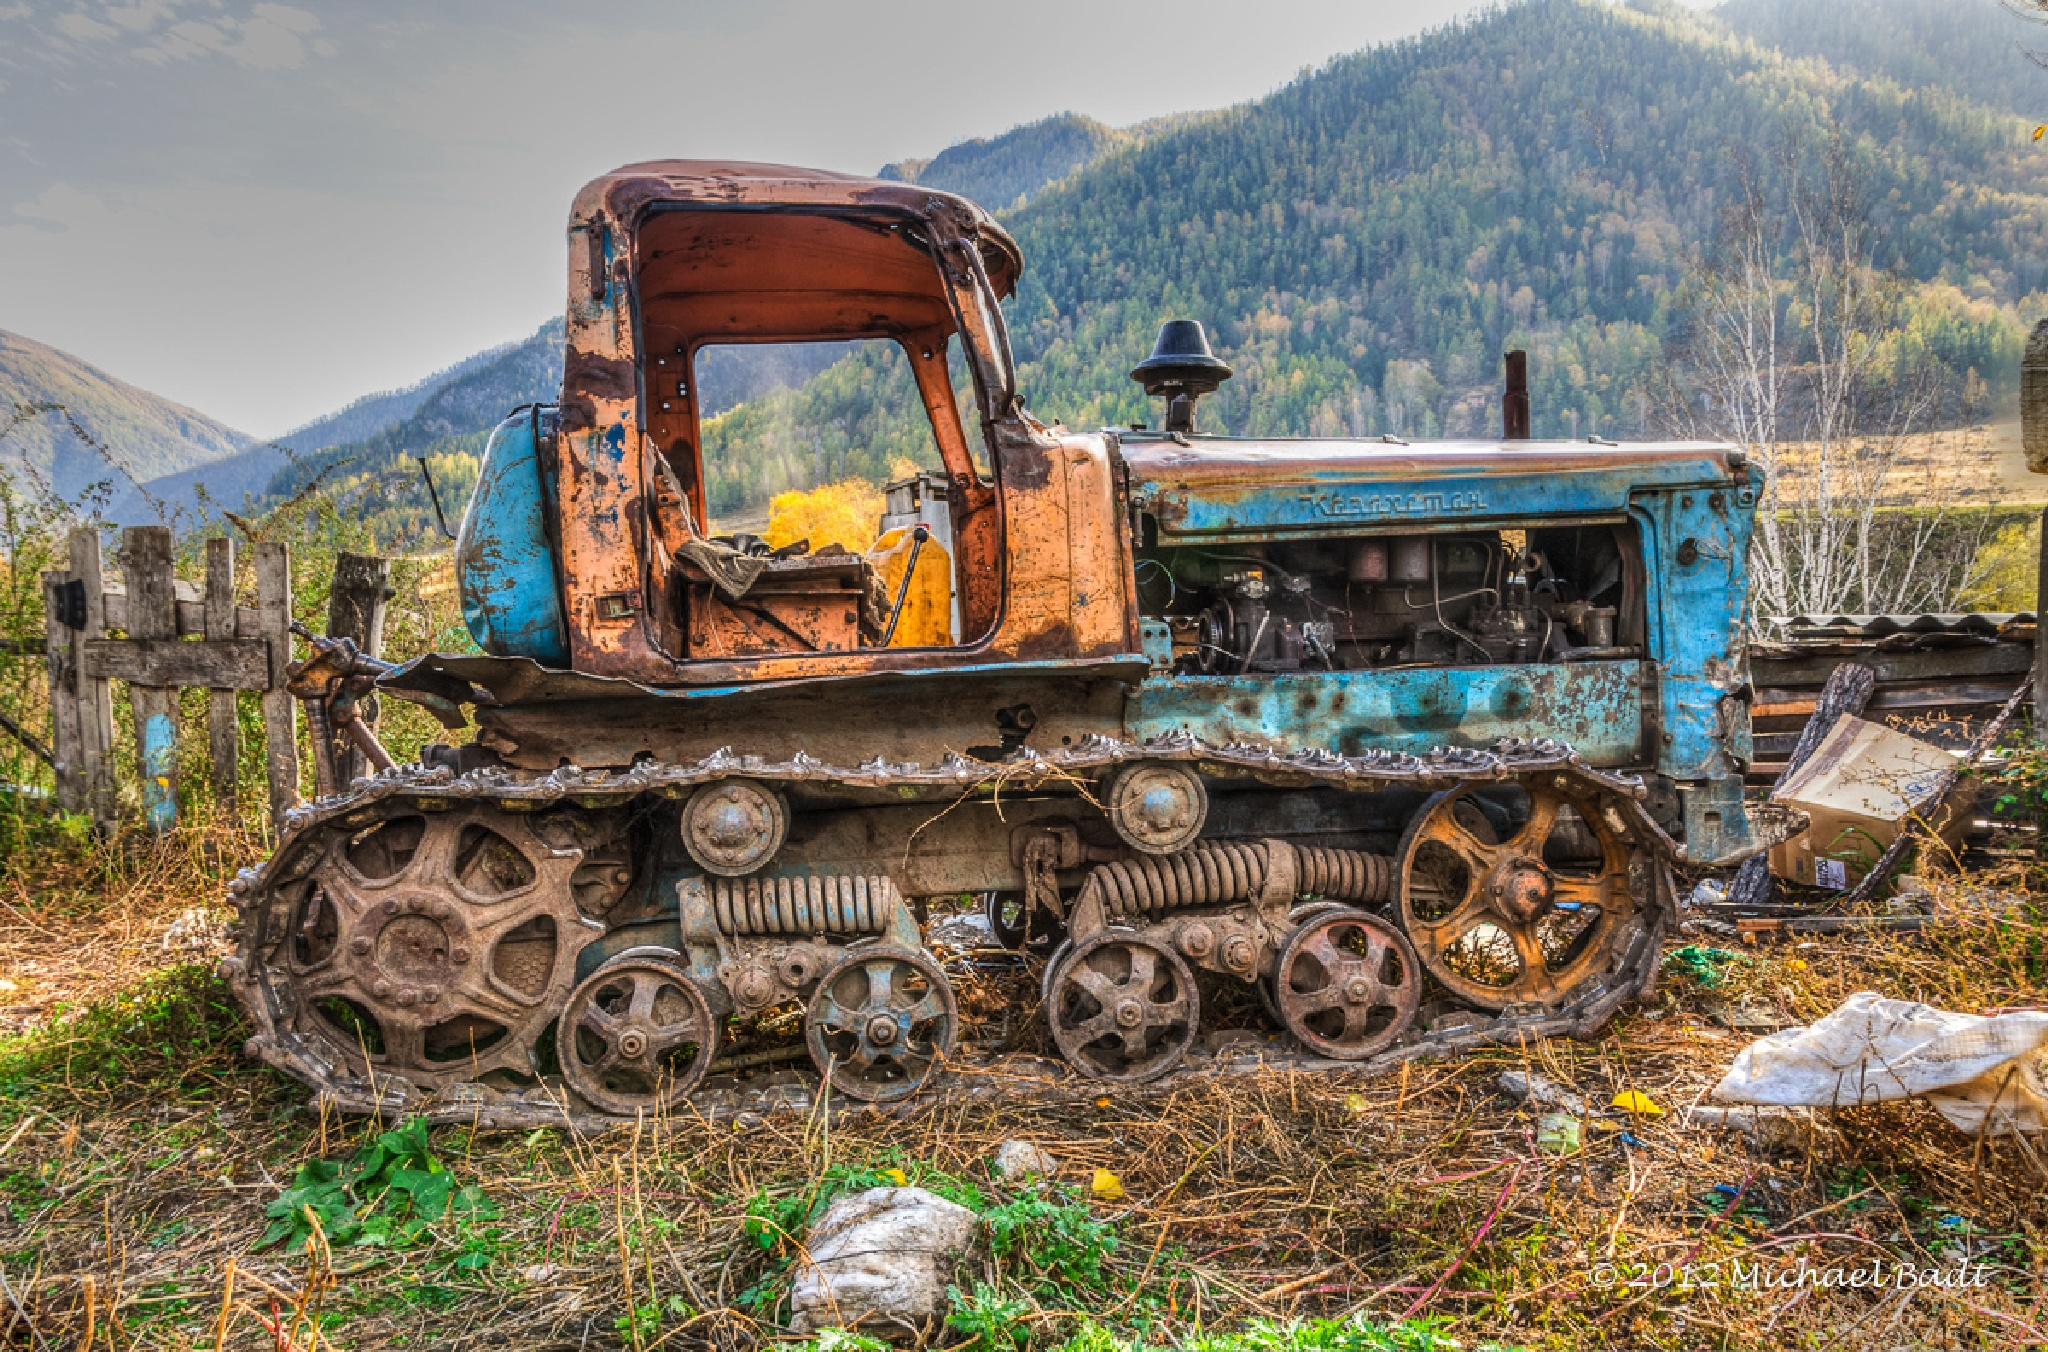 The old tractor by mibadt